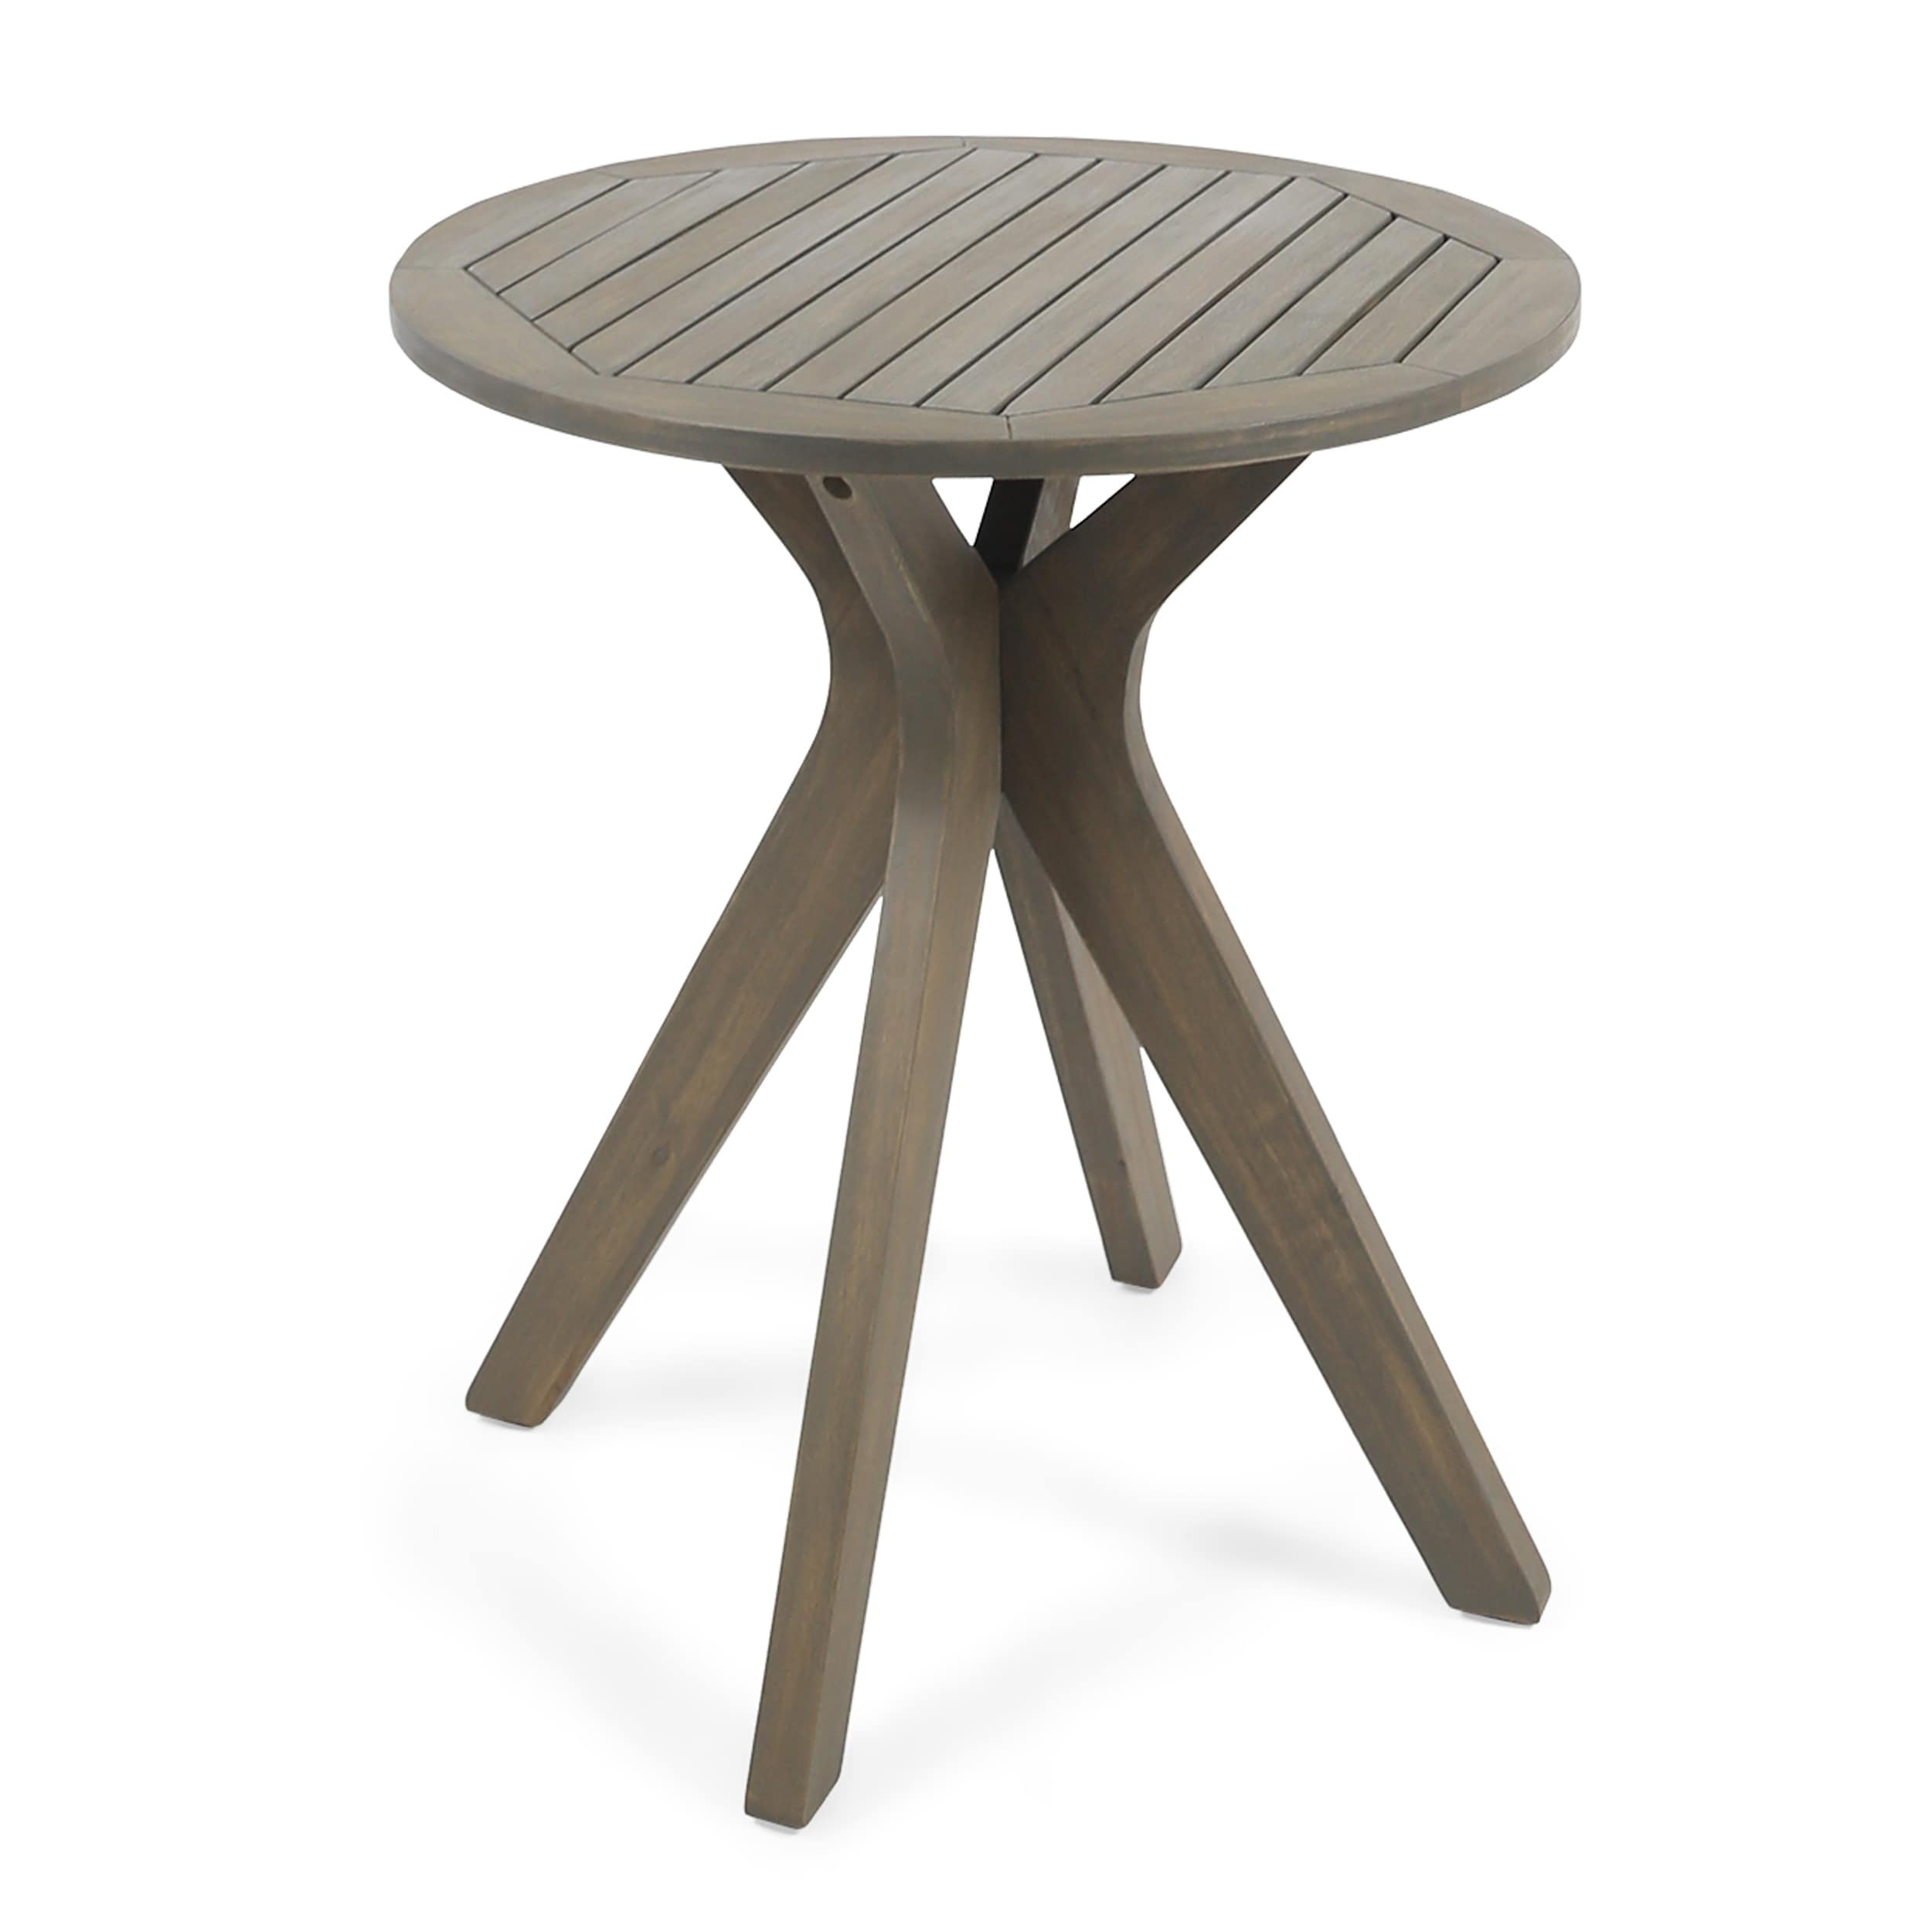 Christopher Knight Home Stamford Outdoor Bistro Table with X Legs by